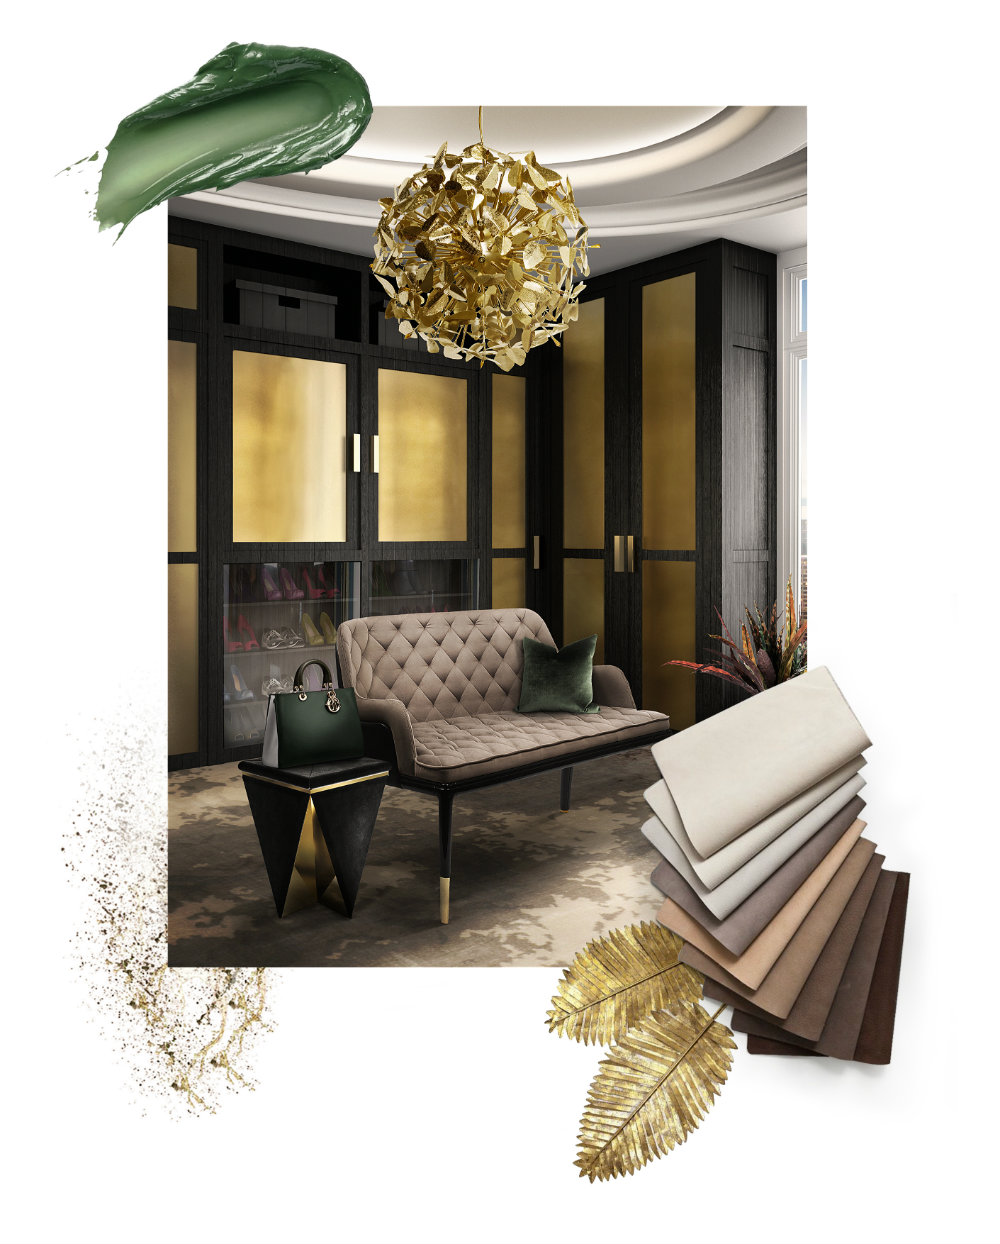 Timeless Fall Trends with LUXXU Home Luxury Office Collection Discover LUXXU's New Luxury Office Collection Timeless Fall Trends with LUXXU Home 01 Luxury Office Collection Discover LUXXU's New Luxury Office Collection Timeless Fall Trends with LUXXU Home 01